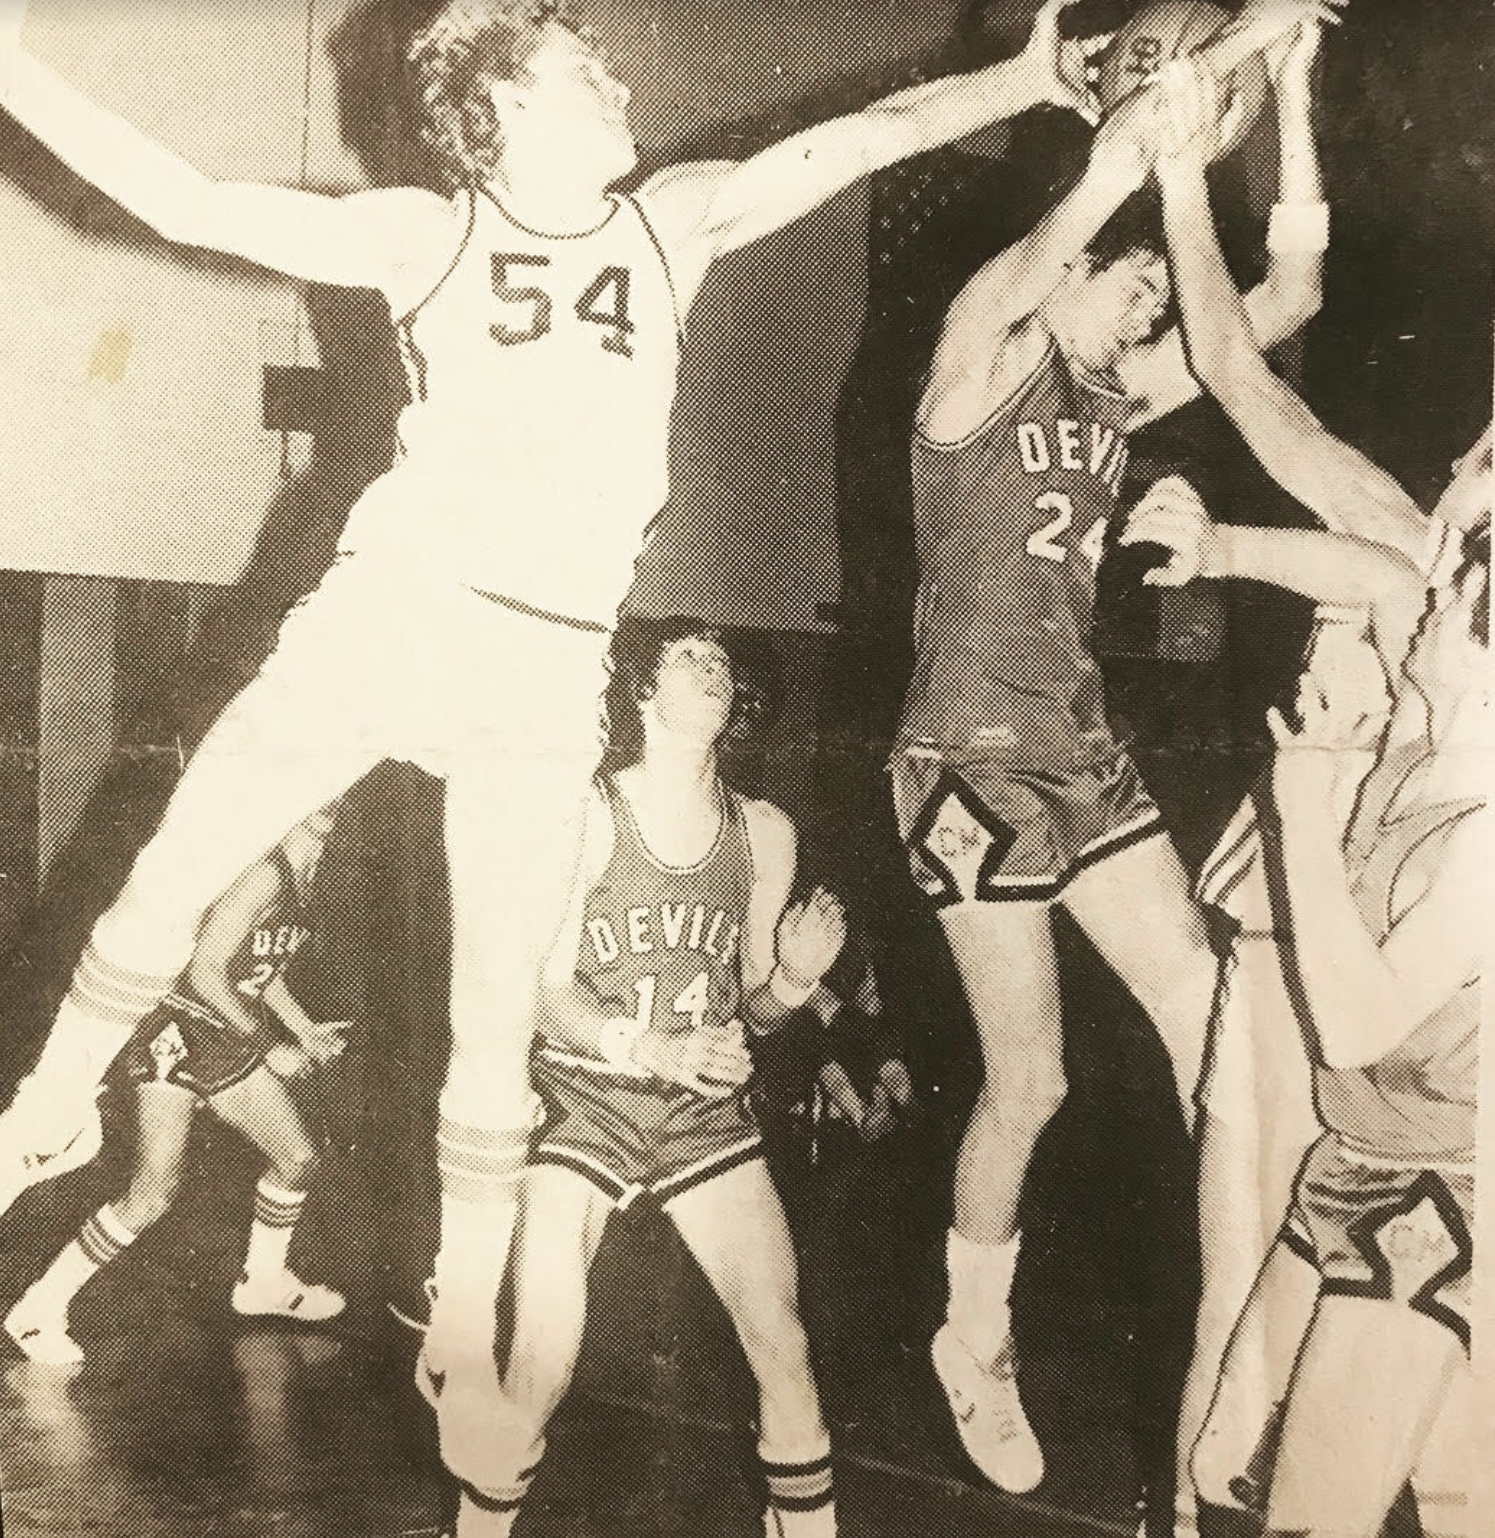 Art Jones playing basketball, he attended Hamilton College on a basketball scholarship.